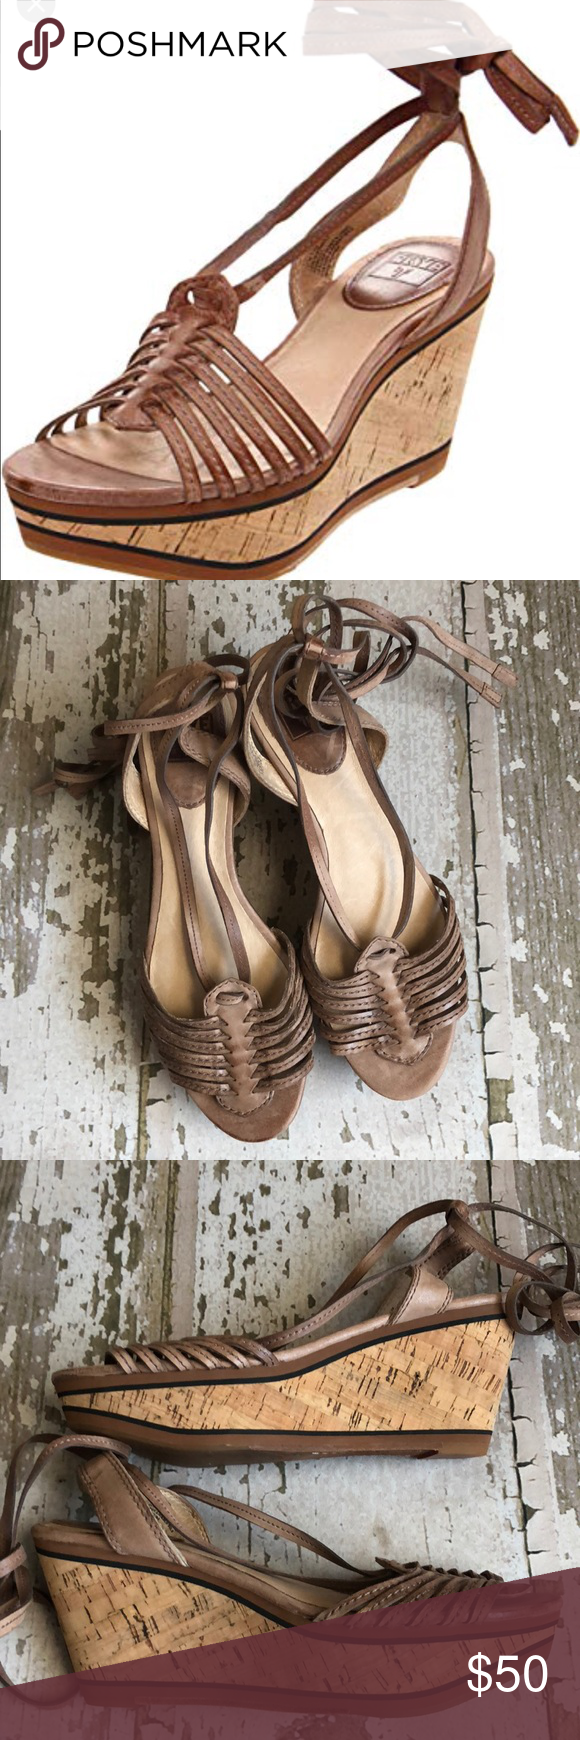 8c6219164a2 Frye Carlie Strappy Sandal Wedges Perfect for summer these like new leather  Frye Carlie strappy wedges tie up at the ankle. Size 7.5. Box not included.